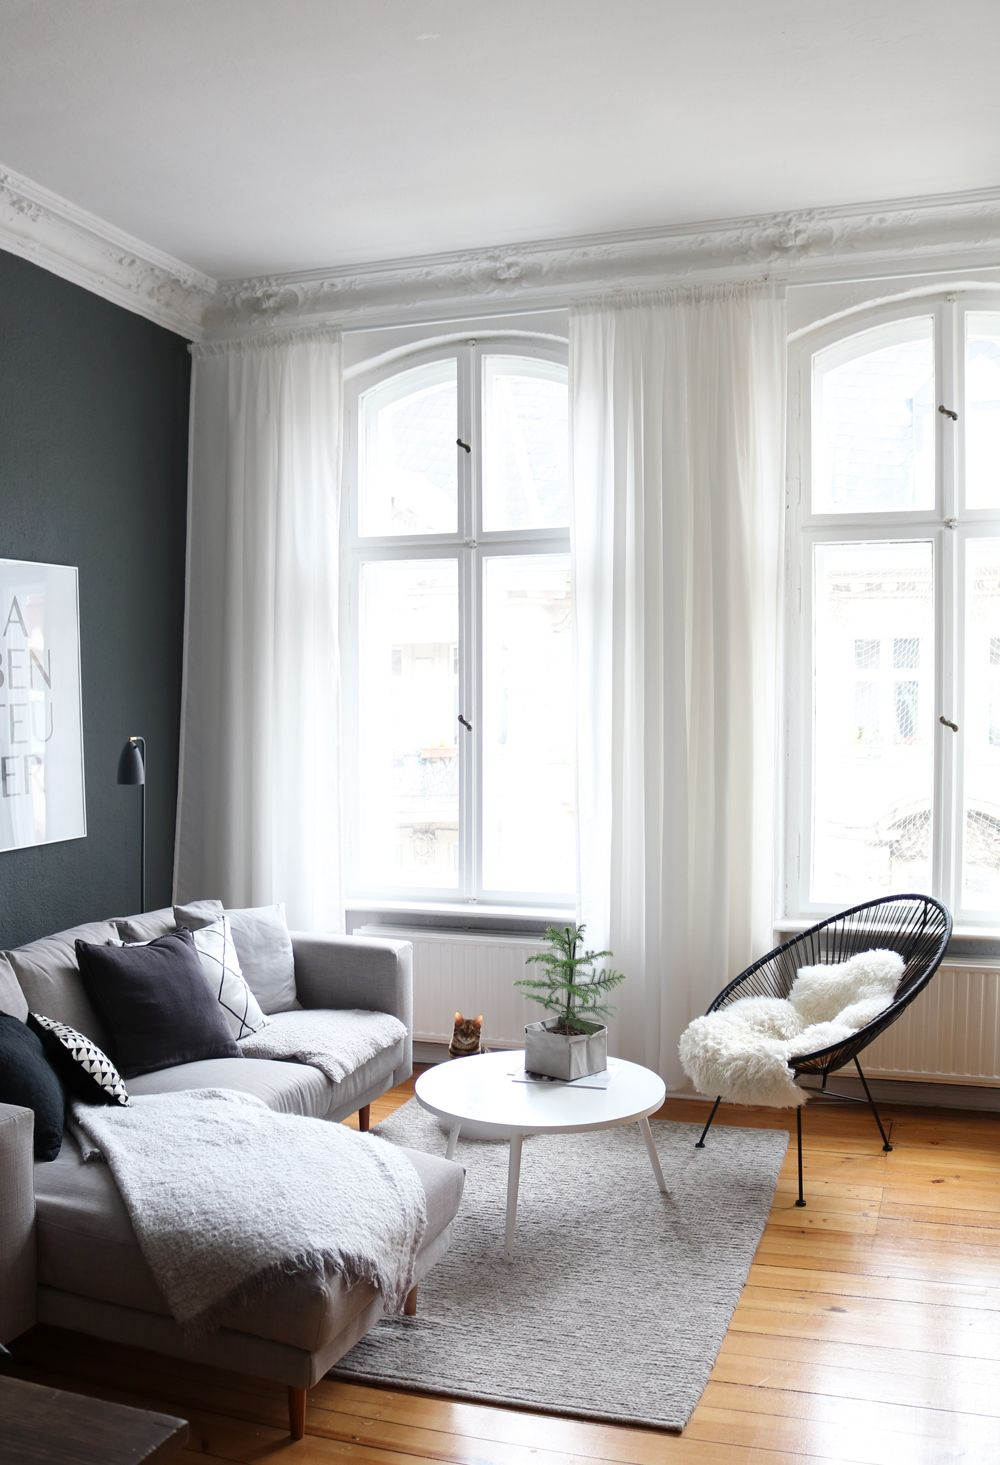 Decorar Salon Cozy Home Wohnungseinrichtung Pinterest Hogar Decoración